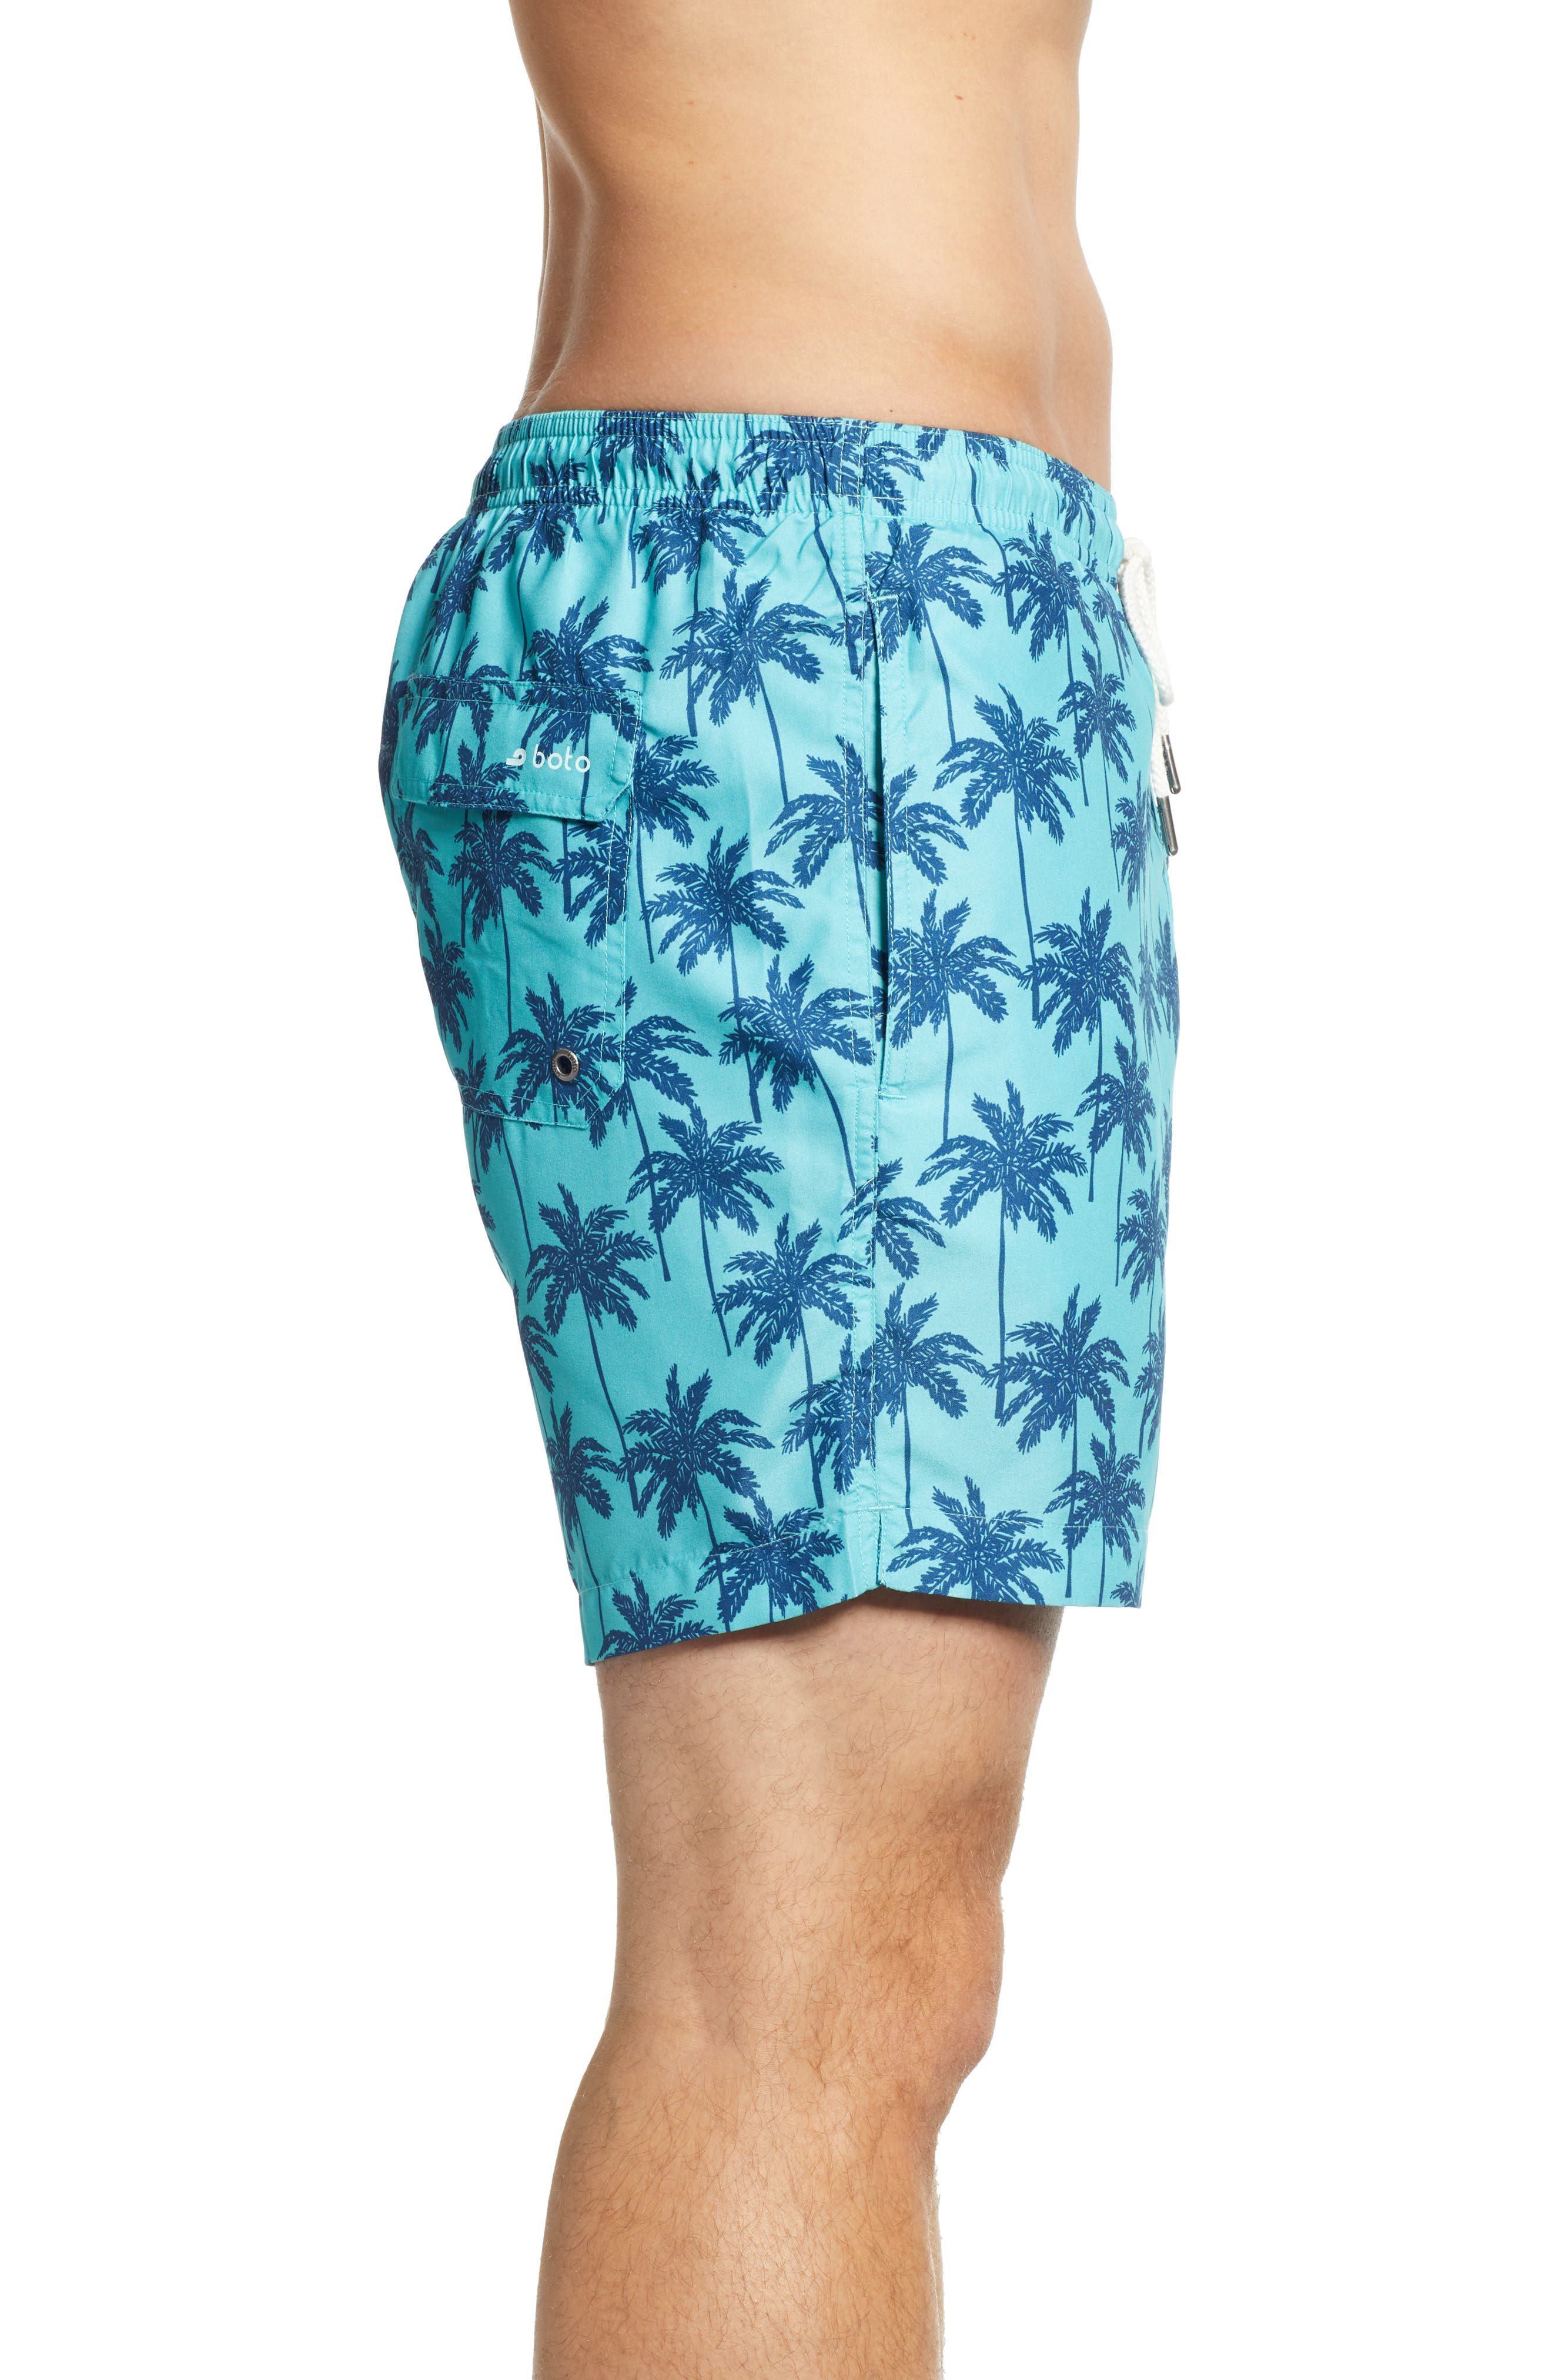 Cabo Palm Trees 6.5 Inch Swim Trunks,                             Alternate thumbnail 3, color,                             443